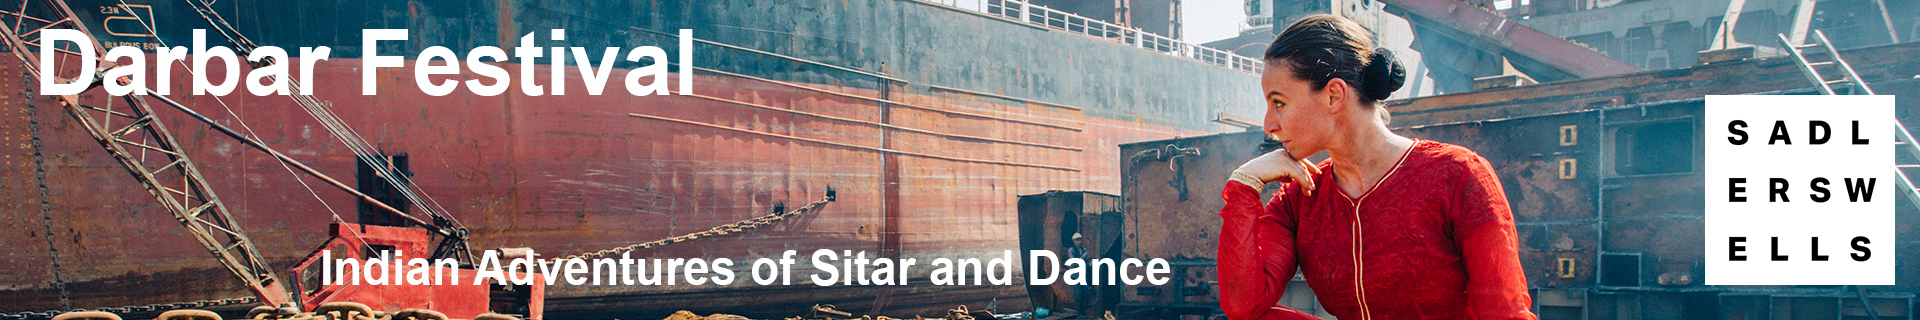 Indian Adventures of Sitar and Dance - Darbar Festival 2017 Header Image